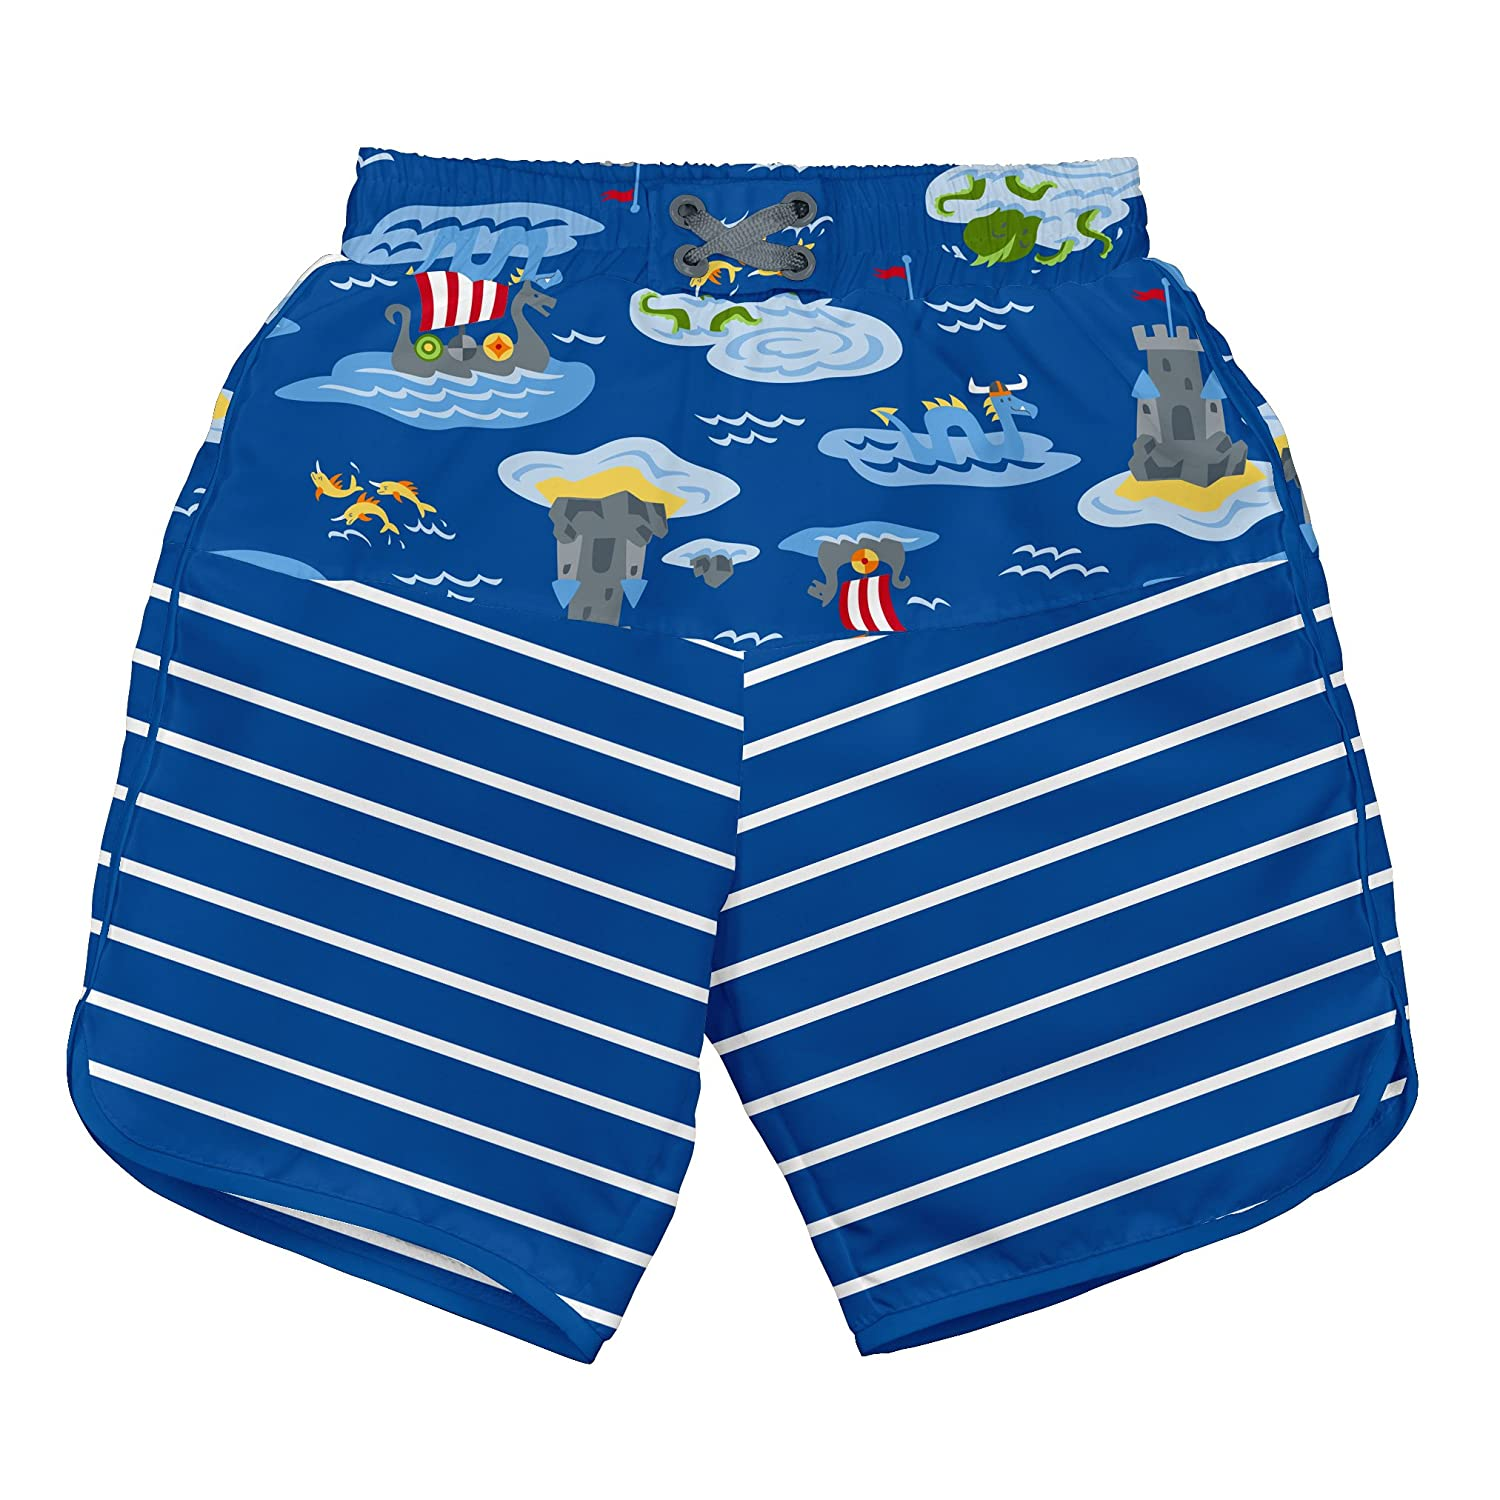 I-Play. Baby Boys' Board Shorts with Built-In Reusable Absorbent Swim Diaper i play Children' s Apparel 722219